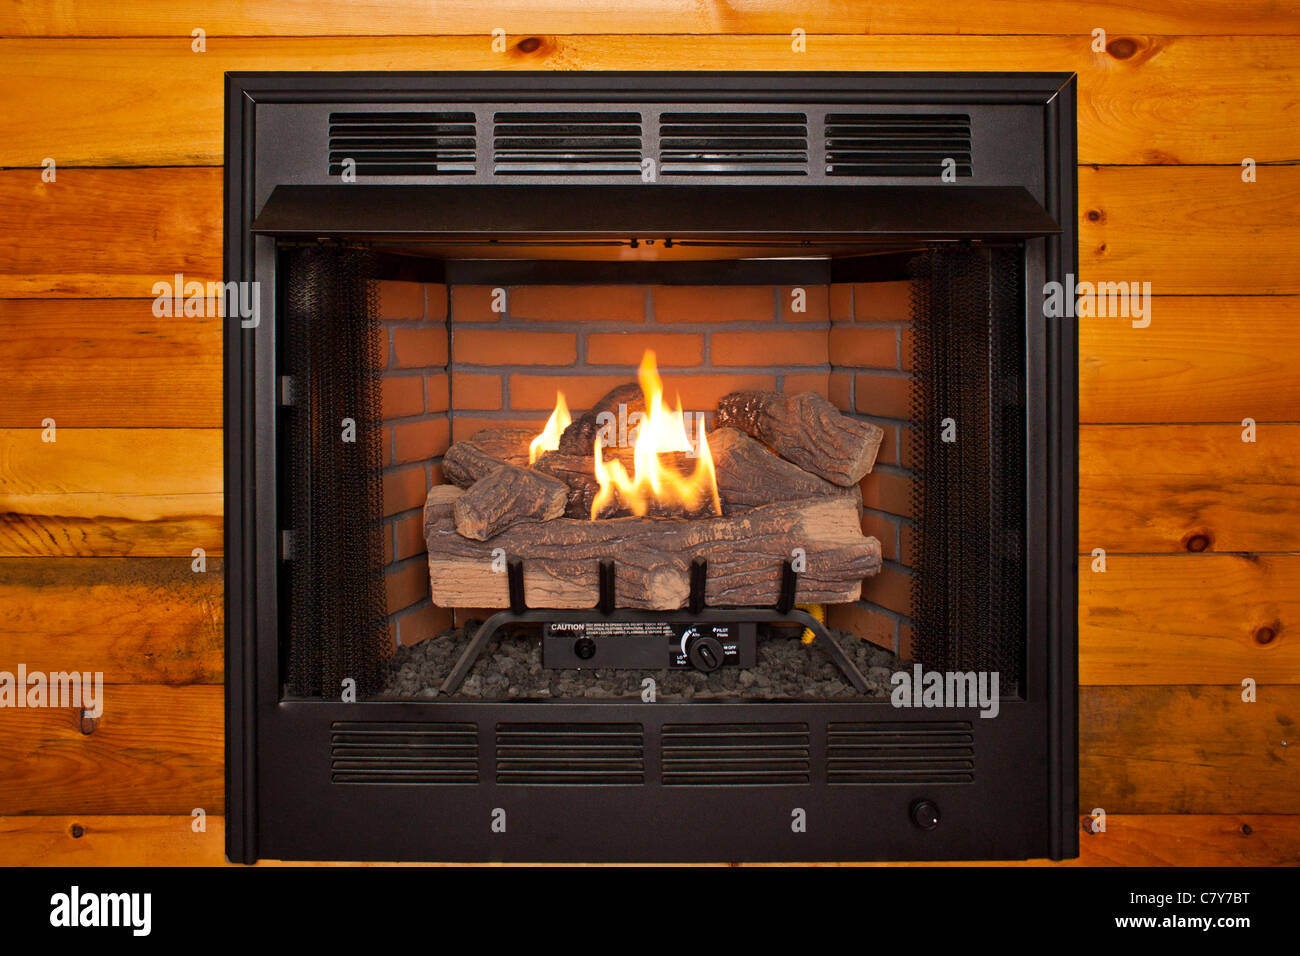 Lit electric fireplace built into log cabin wall Stock Photo ...